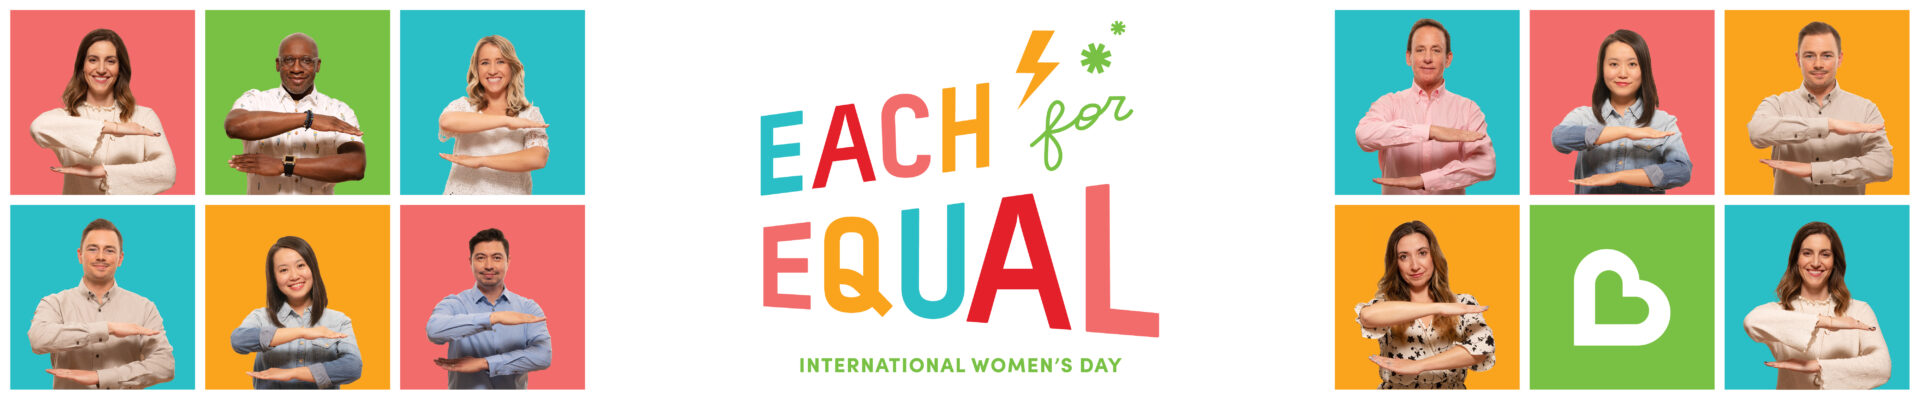 Women run the world (and smart men support them). Creating an #EachForEqual World.